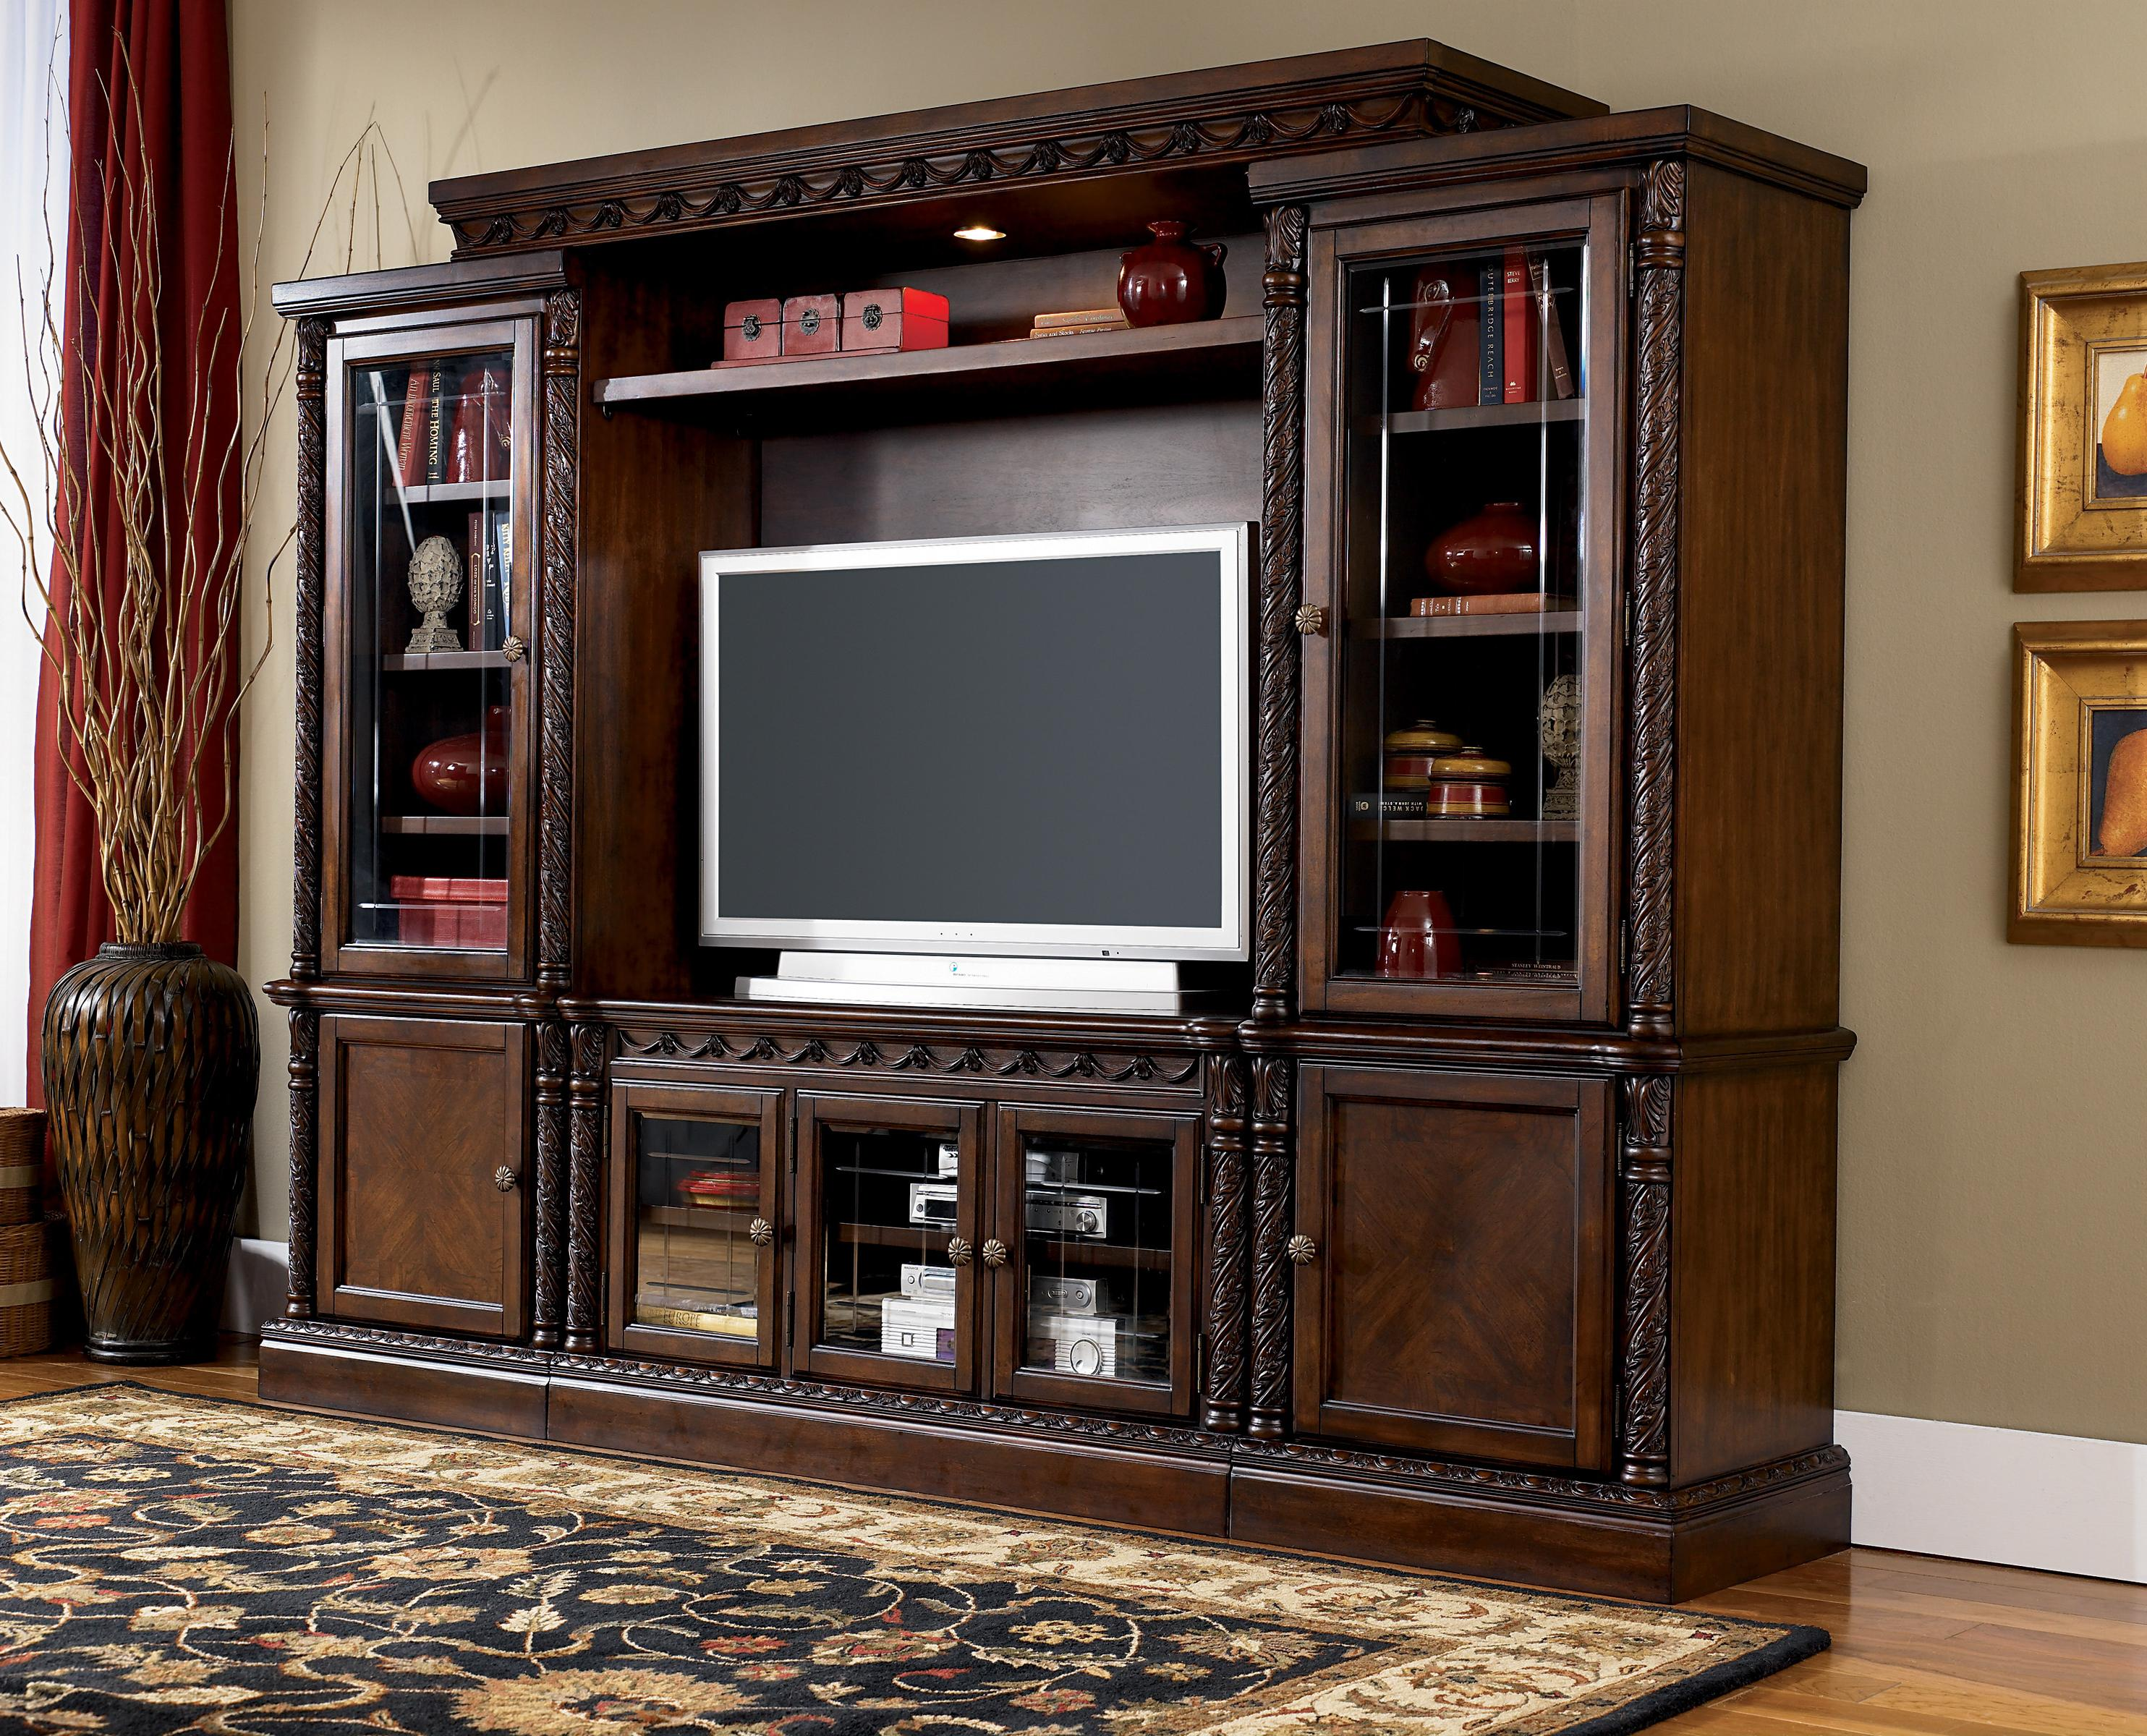 Millennium North Shore Traditional Large 60 Inch TV Stand   Wayside  Furniture   TV Stands